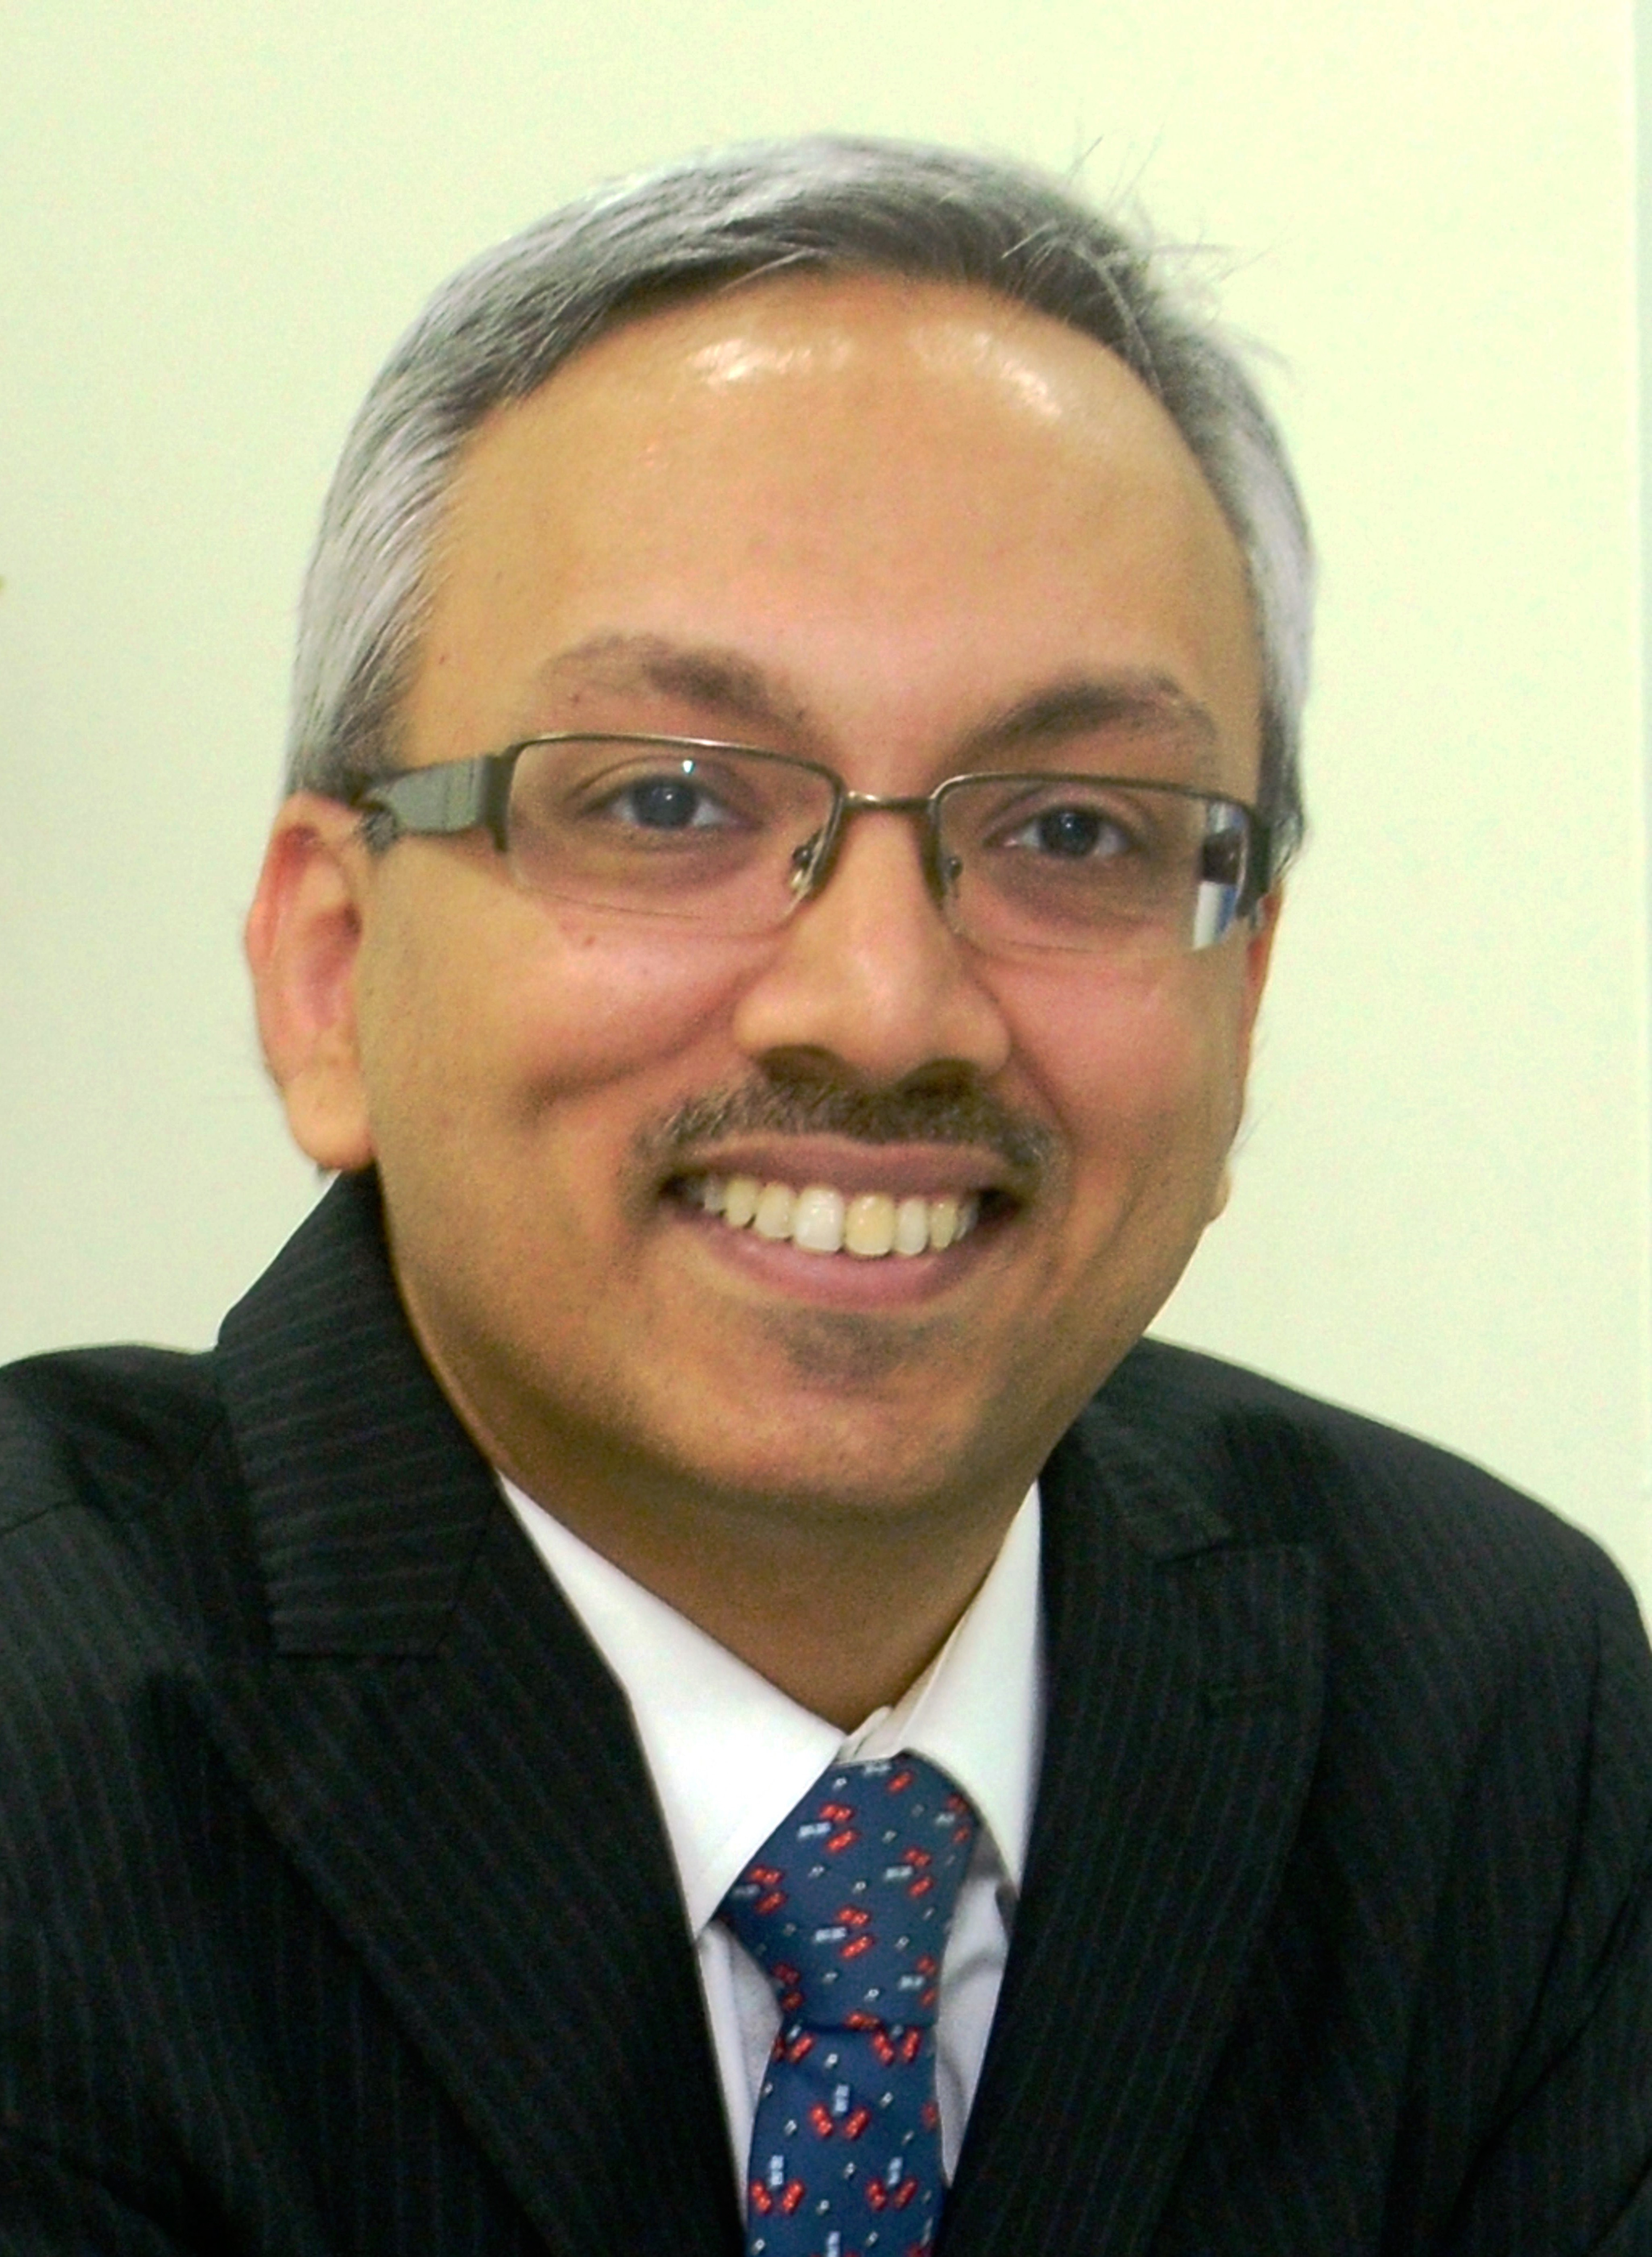 Experian appoints Mohan Jayaraman to lead regional expansion of its advanced decisioning analytics and business information services in Asia Pacific